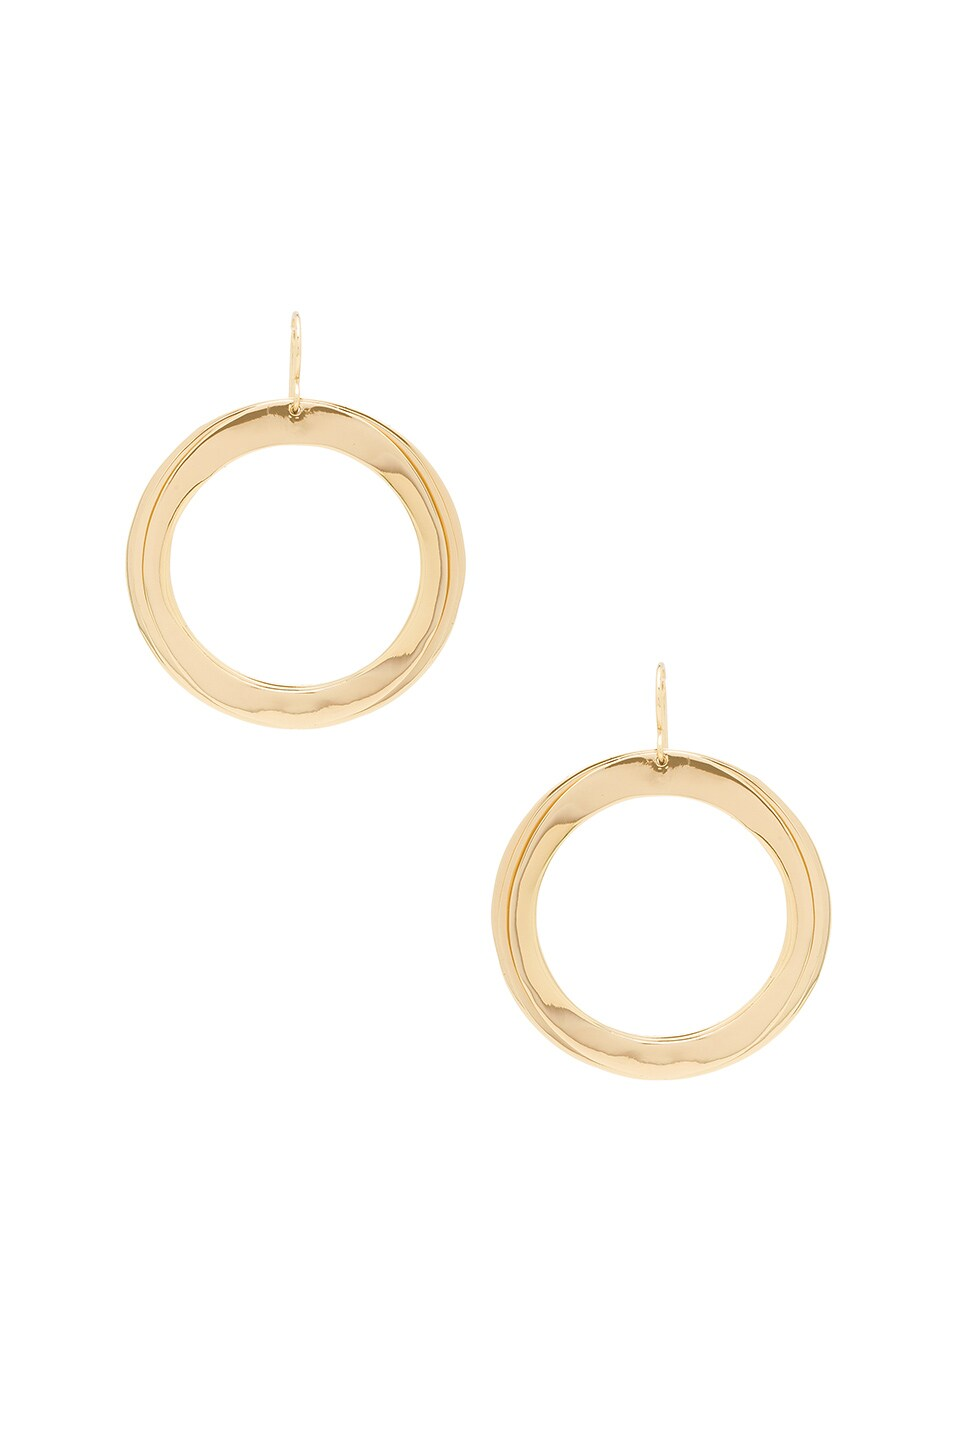 Elizabeth and James Avila Earrings in Yellow Gold